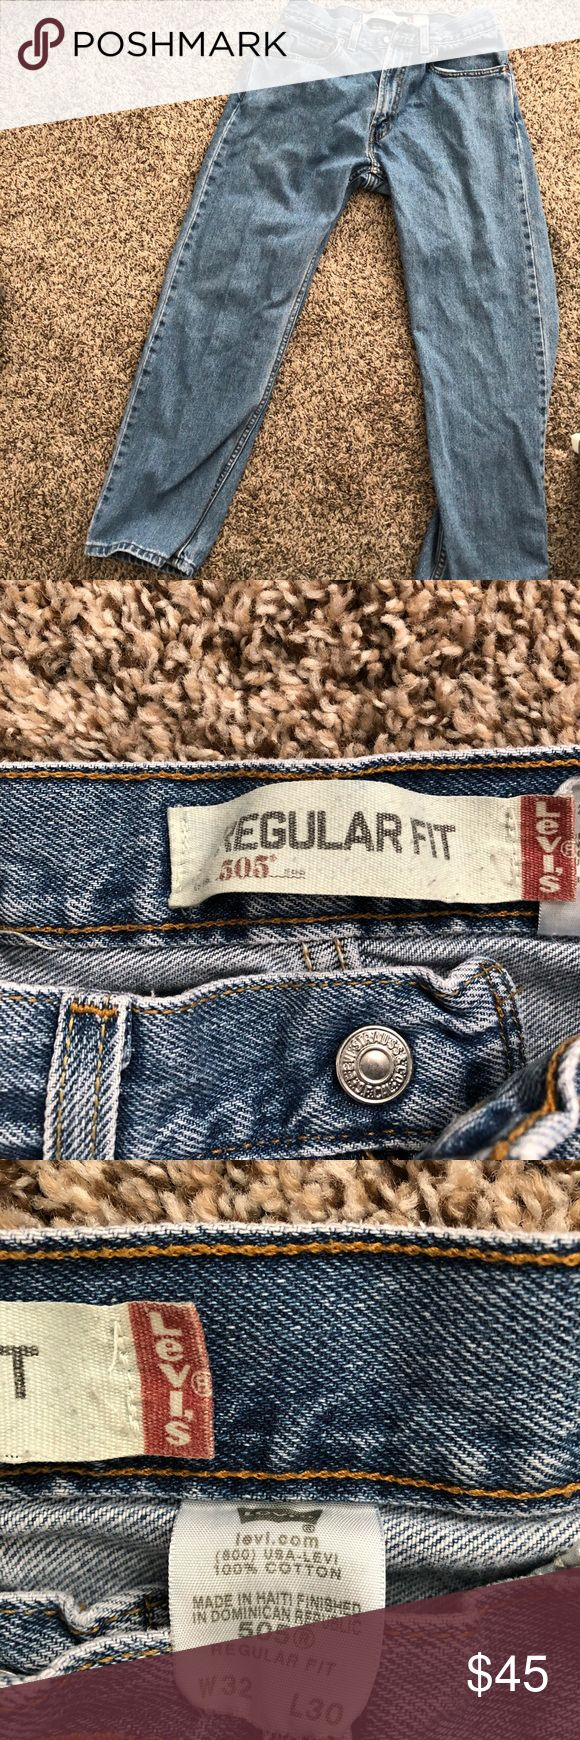 Vintage Levi 505 jeans Super rare and cute vintage Levi's 505 jeans relaxed fit waist says 32 but measures at a 30 Levi's Jeans